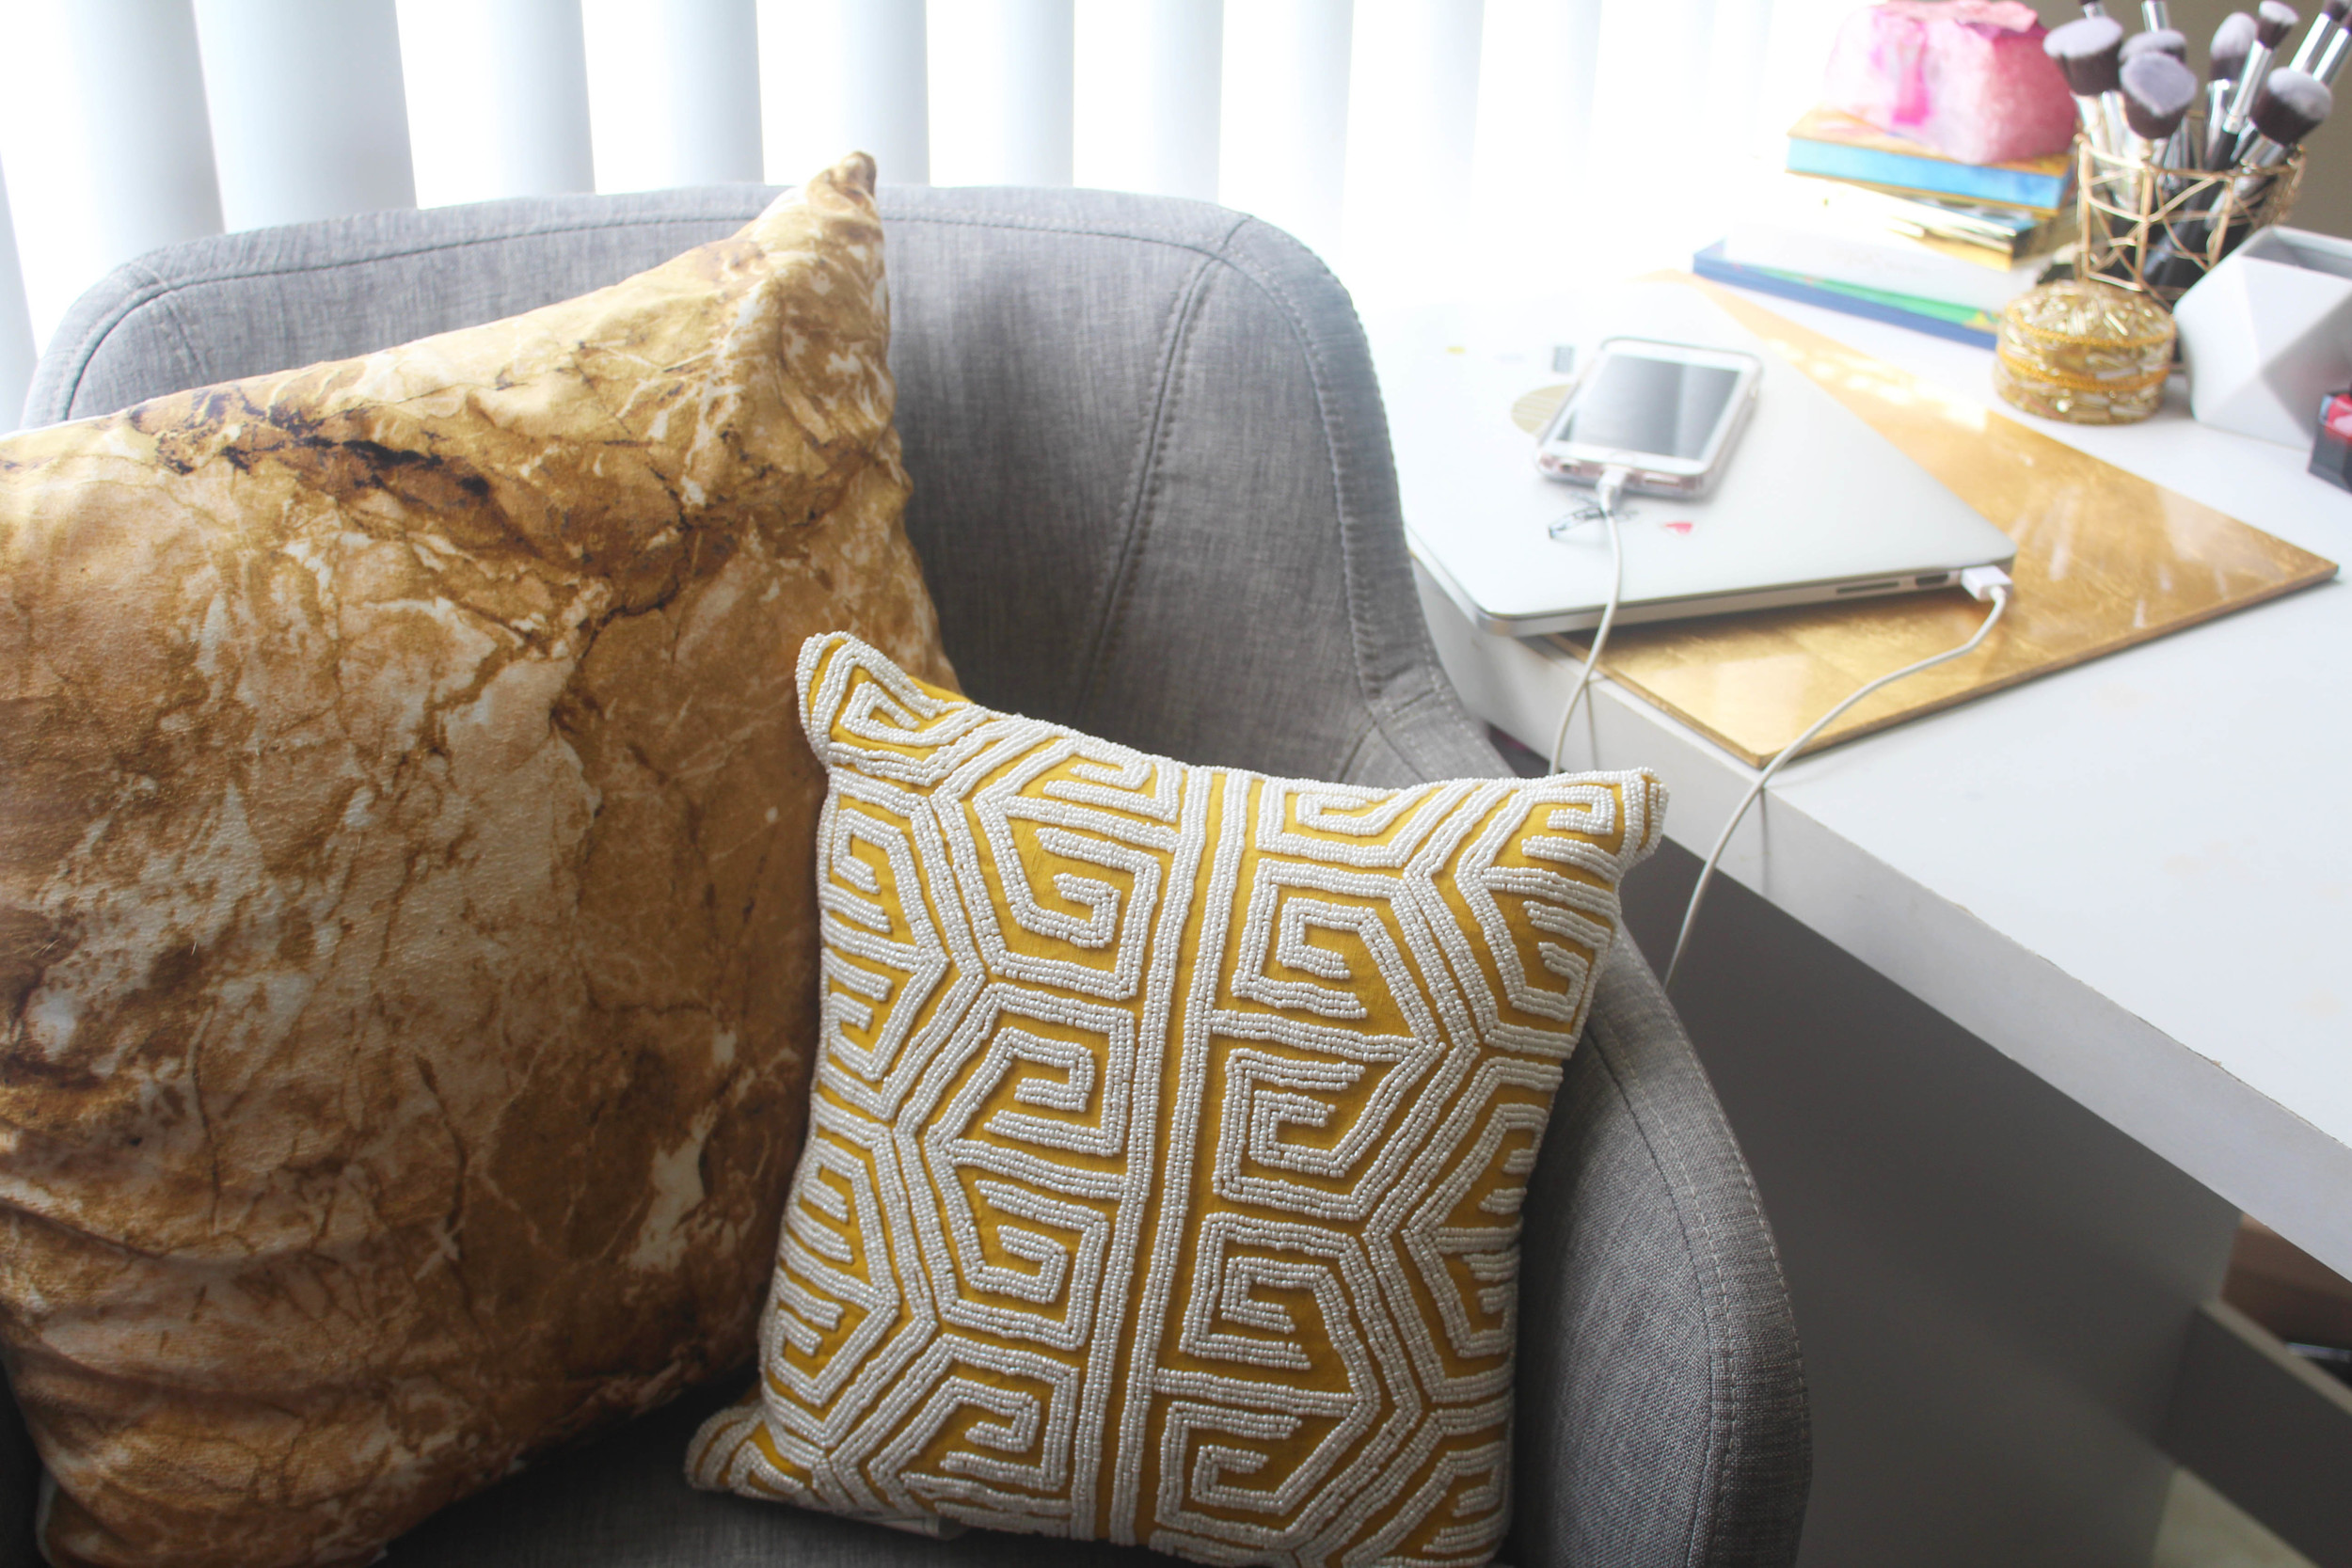 Geostone Throw Pillow ($12.99) // Beaded Throw Pillow ($19.99)